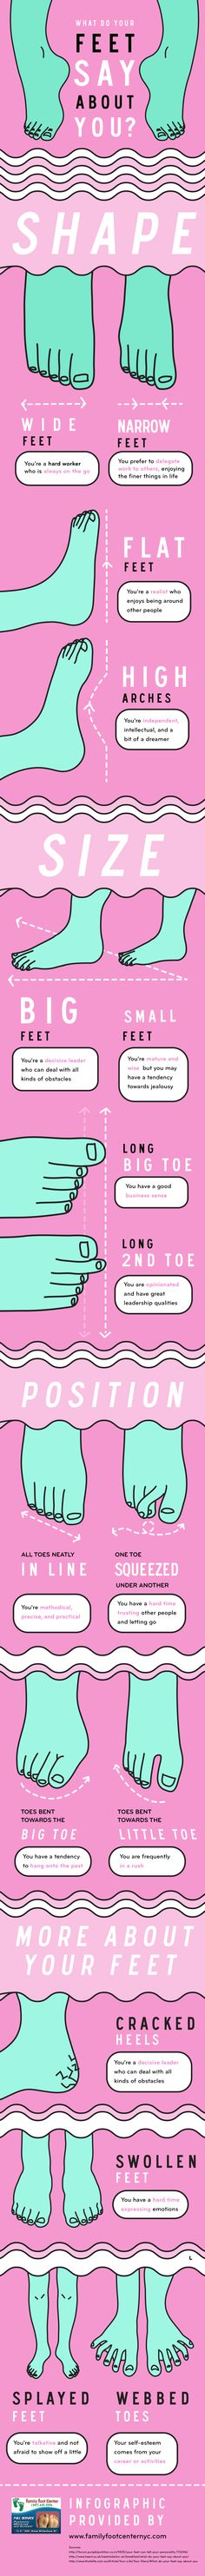 This is cracking me up! Daily Infographic A New Infographic Every Day Data Visualization, Information Design and Infographics Informations Design, Web Design, Information Graphics, Palmistry, Grafik Design, Data Visualization, Things To Know, Just In Case, Health Tips